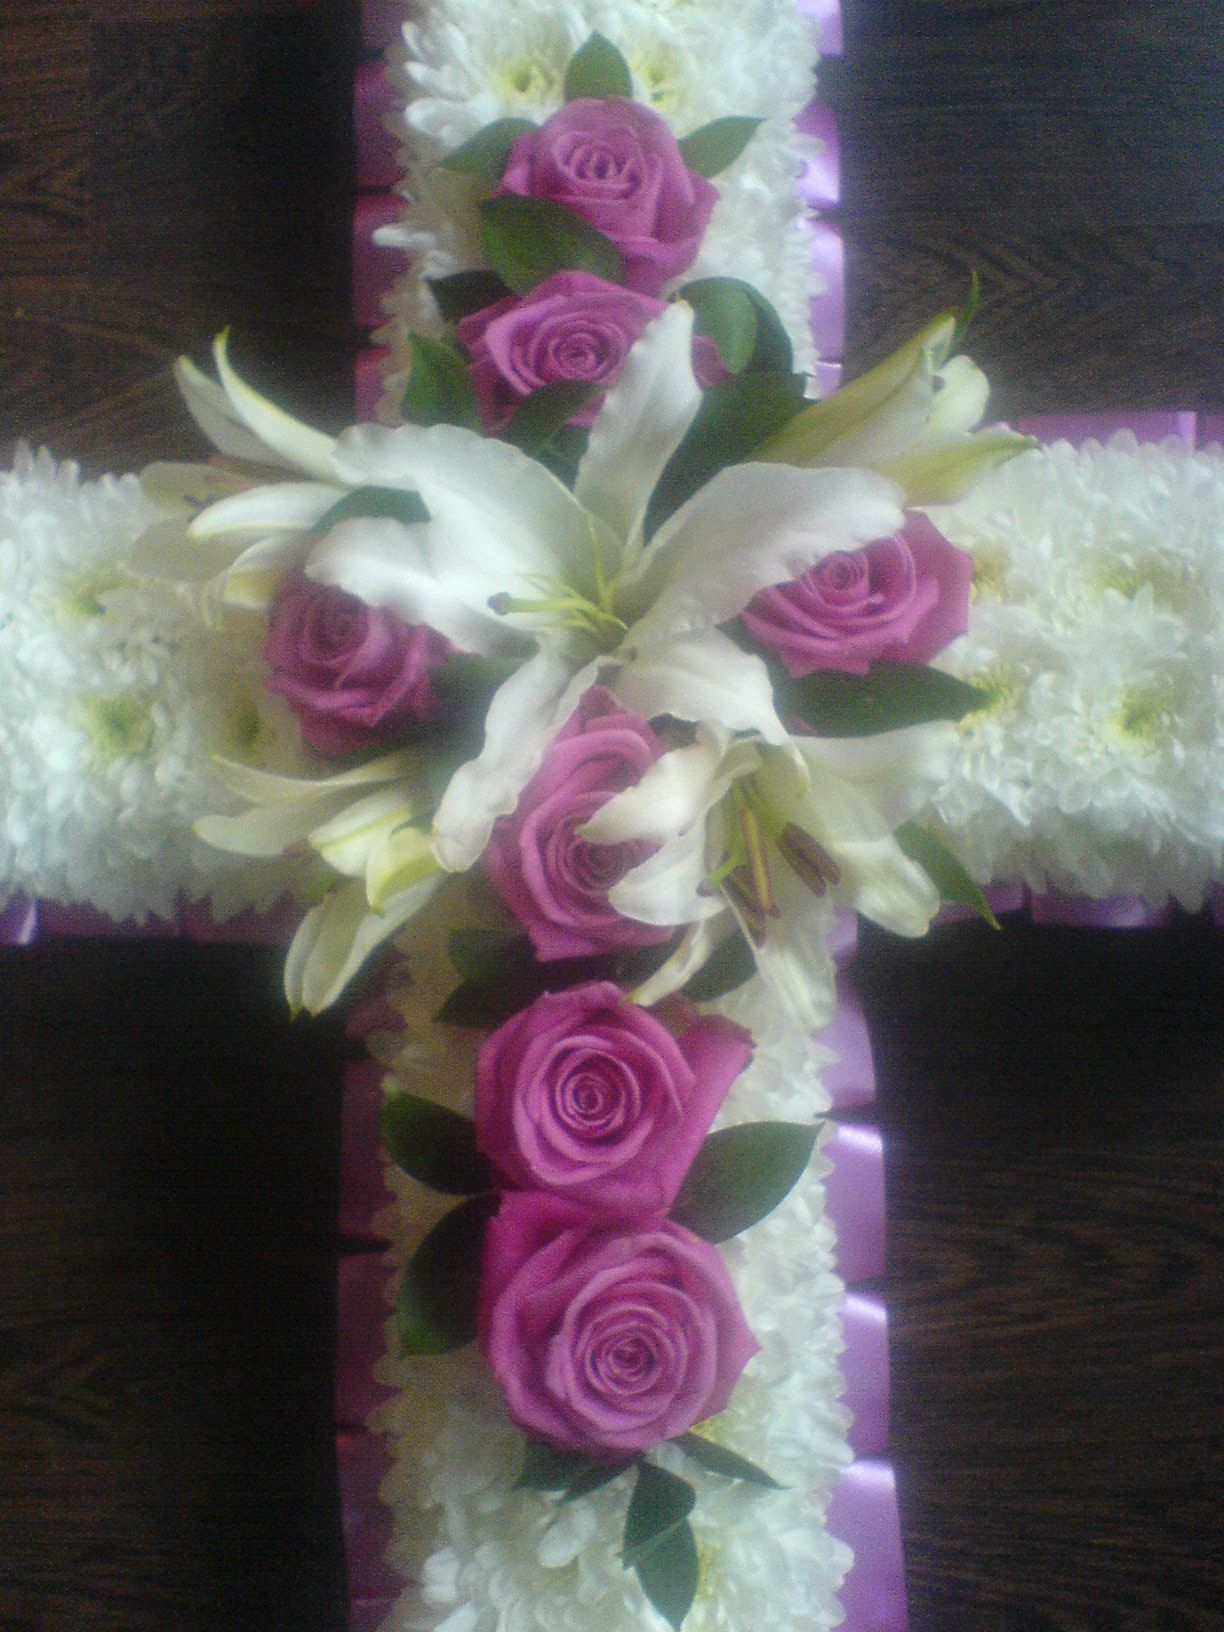 George jones funeral funeral flowersgfuneral20flower funeral flowers biography in western society when death occurs many cultural traditions become the focus of social groups including wa izmirmasajfo Choice Image